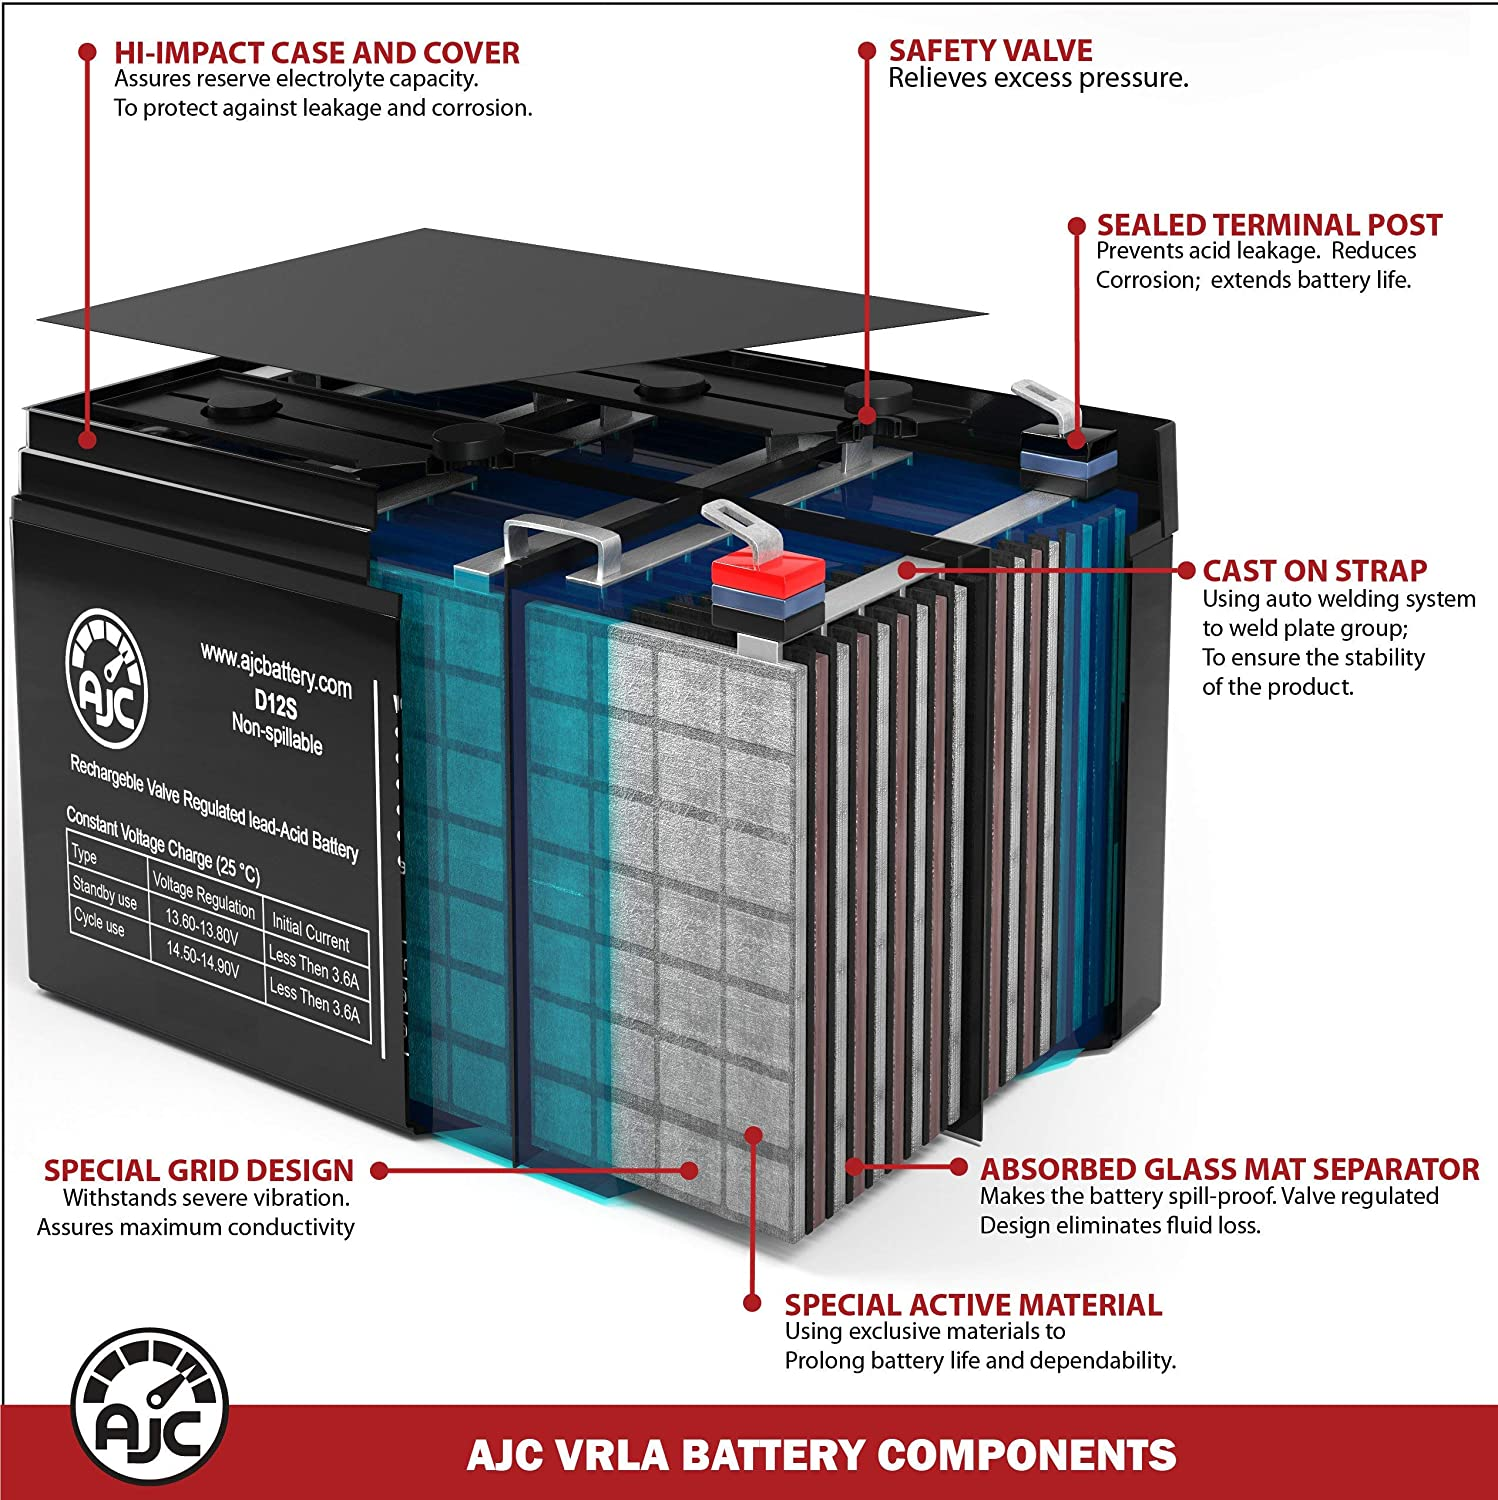 AJC Battery Compatible with ONEAC ONBP-217 ONXBC-2C2017 12V 18Ah UPS Battery